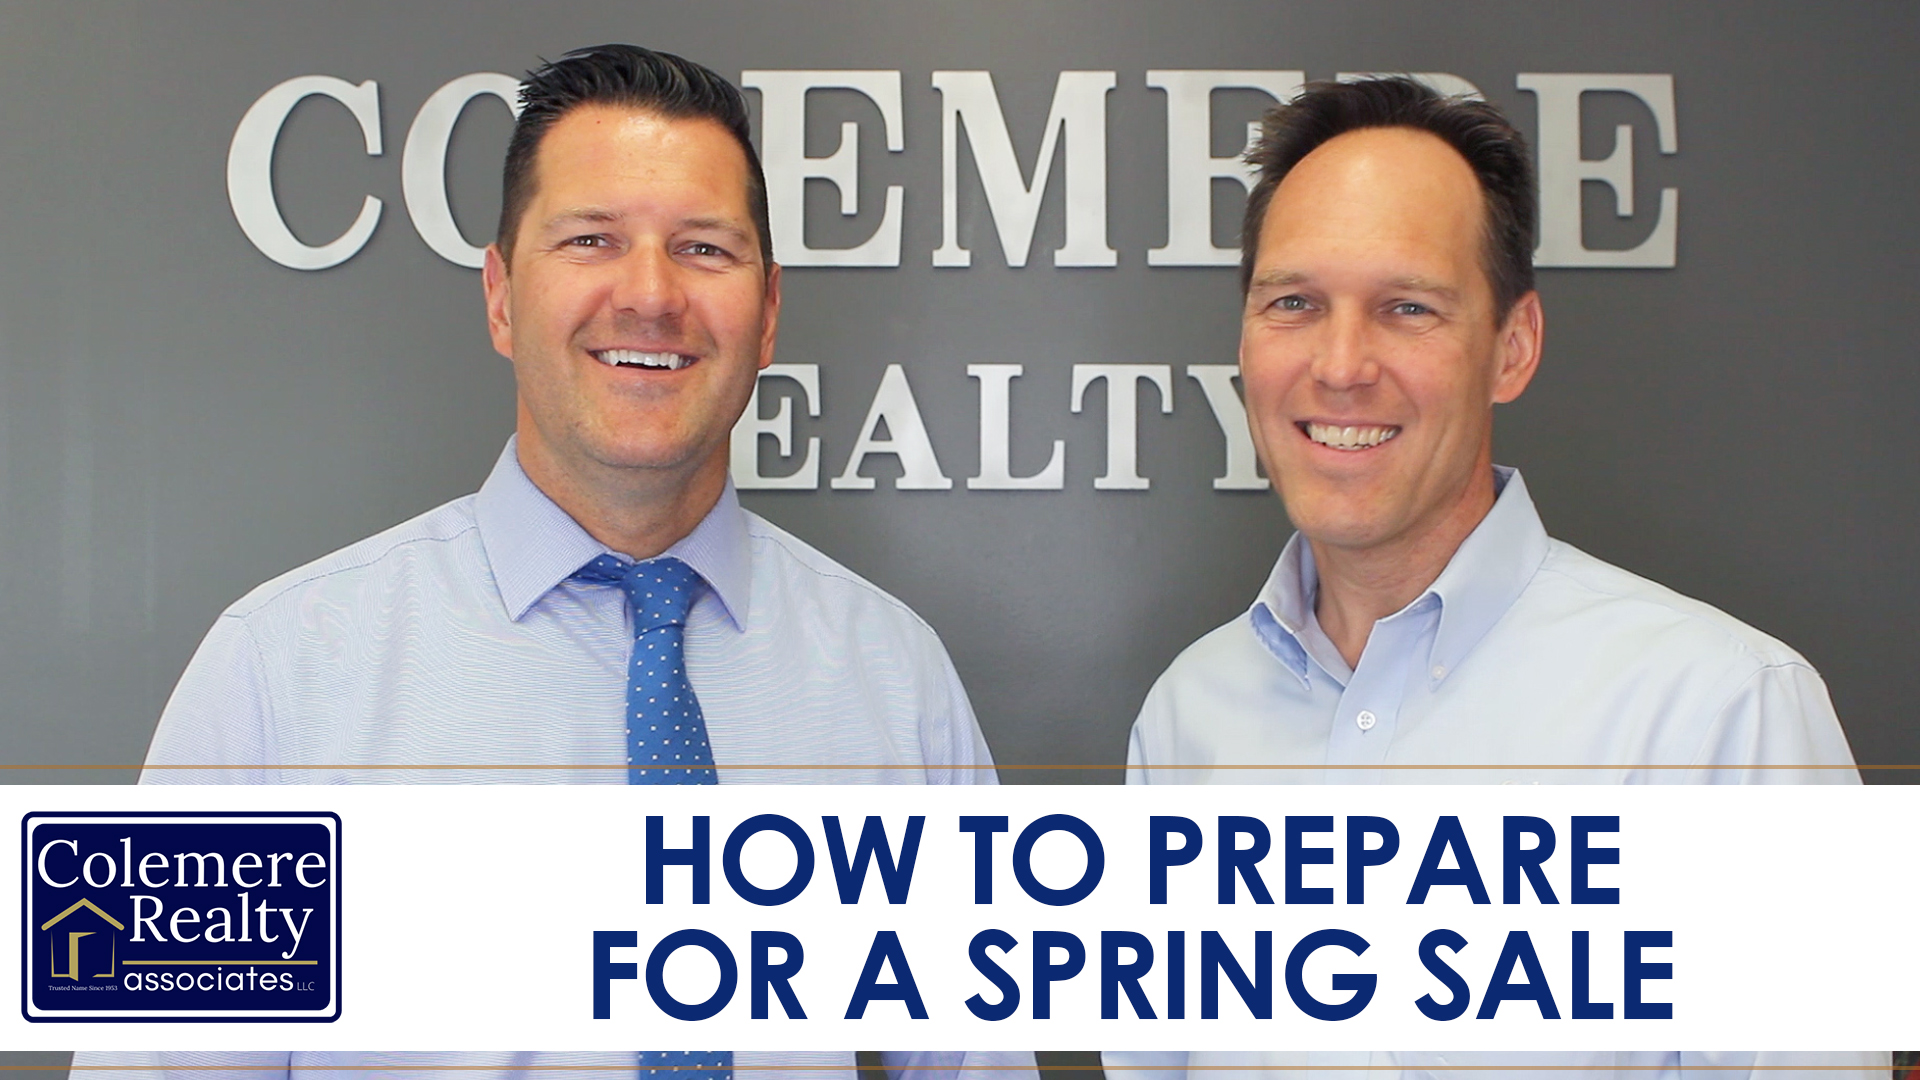 5 Steps for Preparing Your Home for a Spring Sale